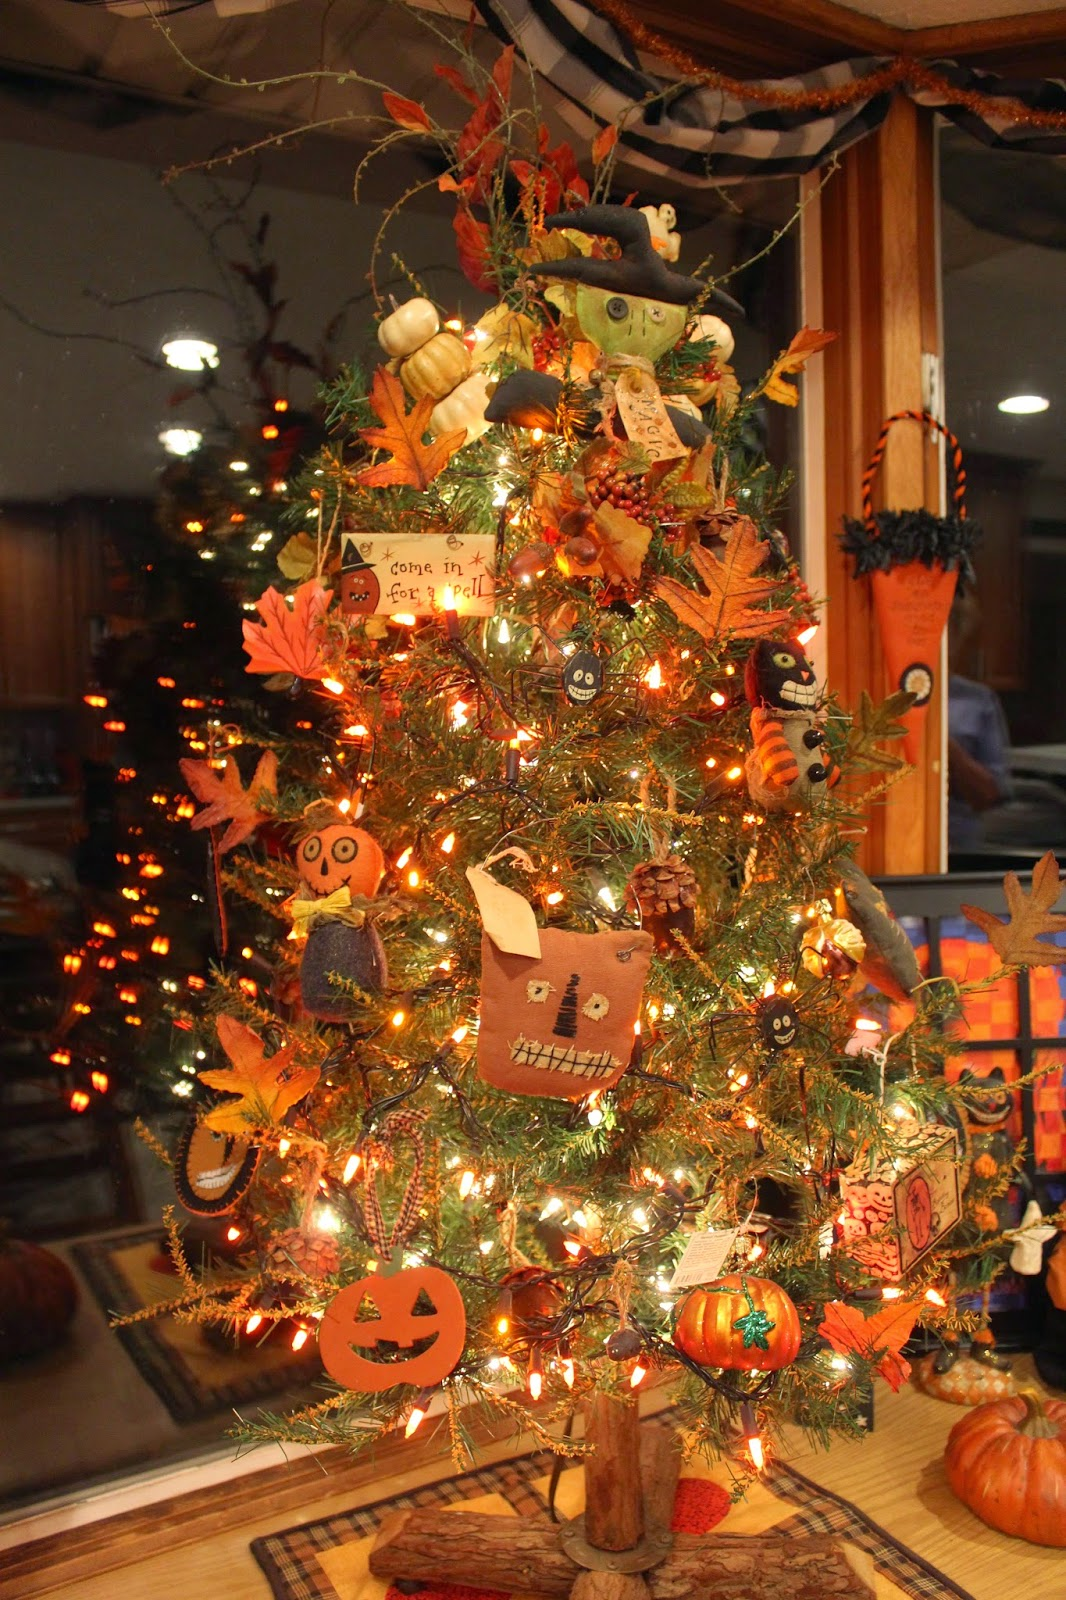 decorating a tree for autumn or halloween - Orange Coloured Christmas Tree Decorations